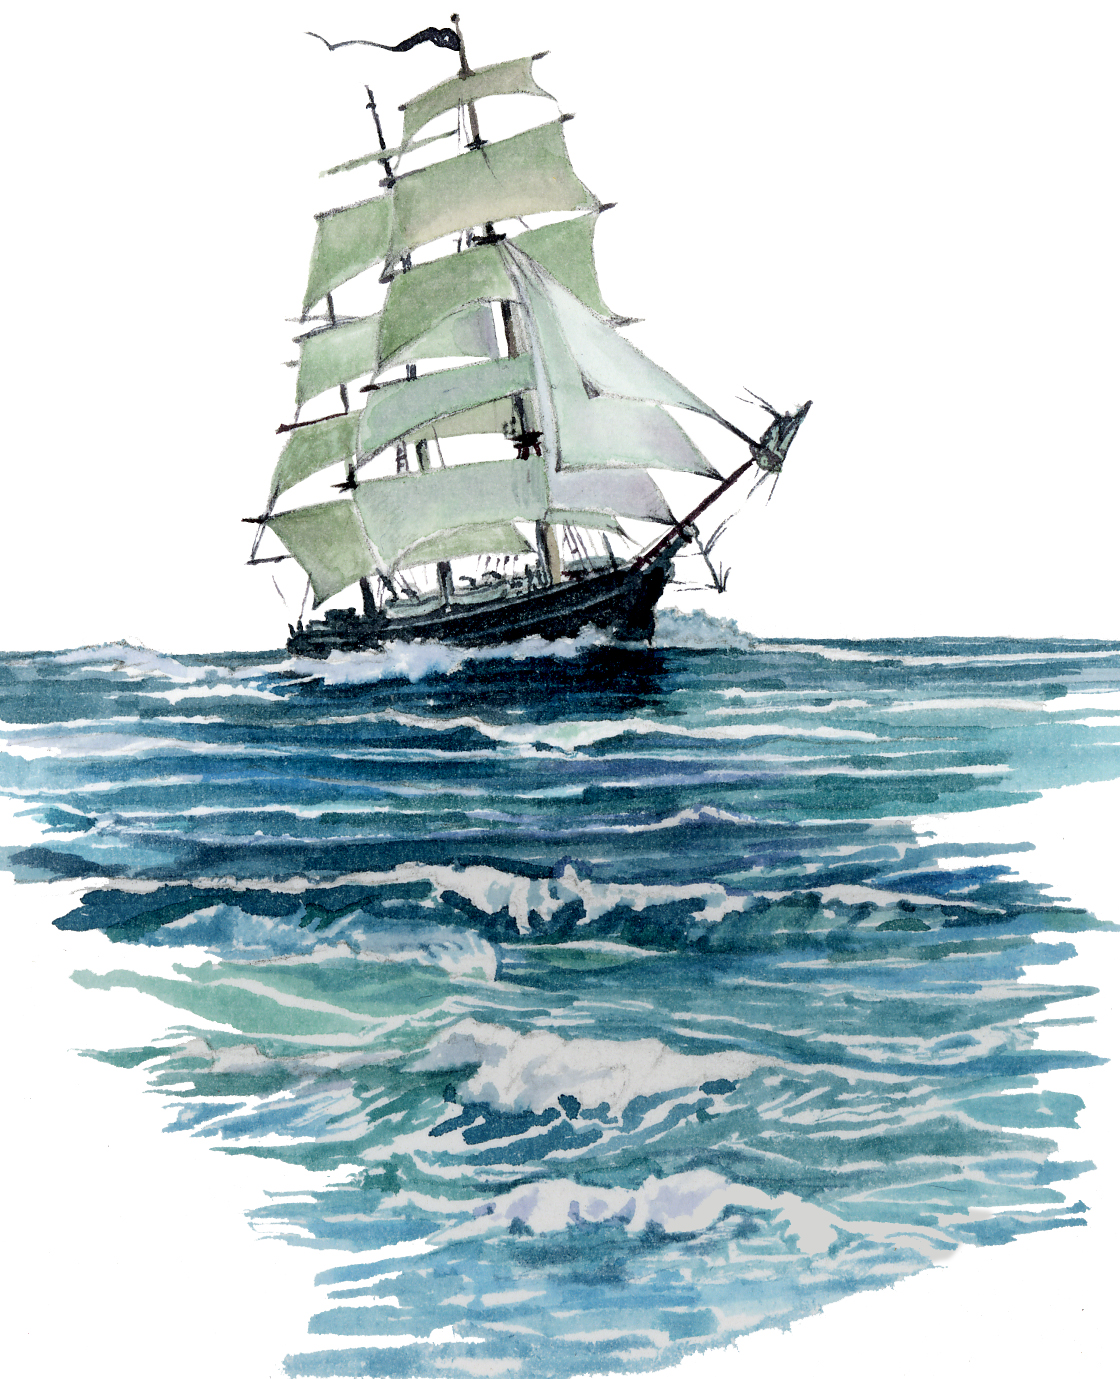 Clipper ship illustration used in background of Rob's Really Good Pirate's Daughter Green Tea